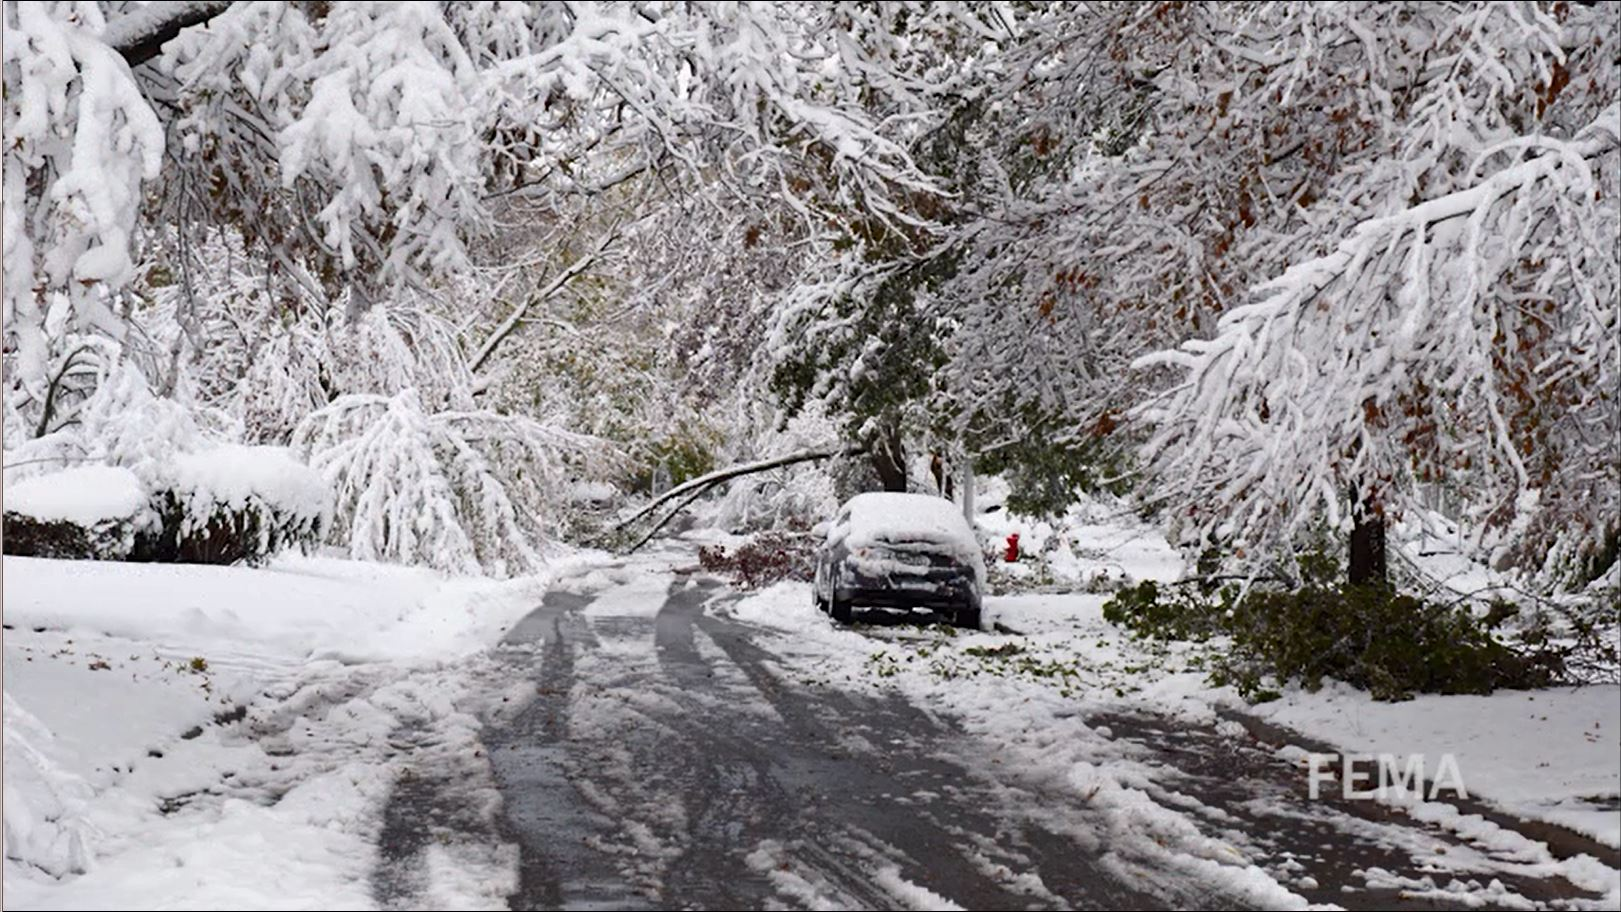 La Niña Severe Winter Weather Foretells Damaging Storms—Power Outages